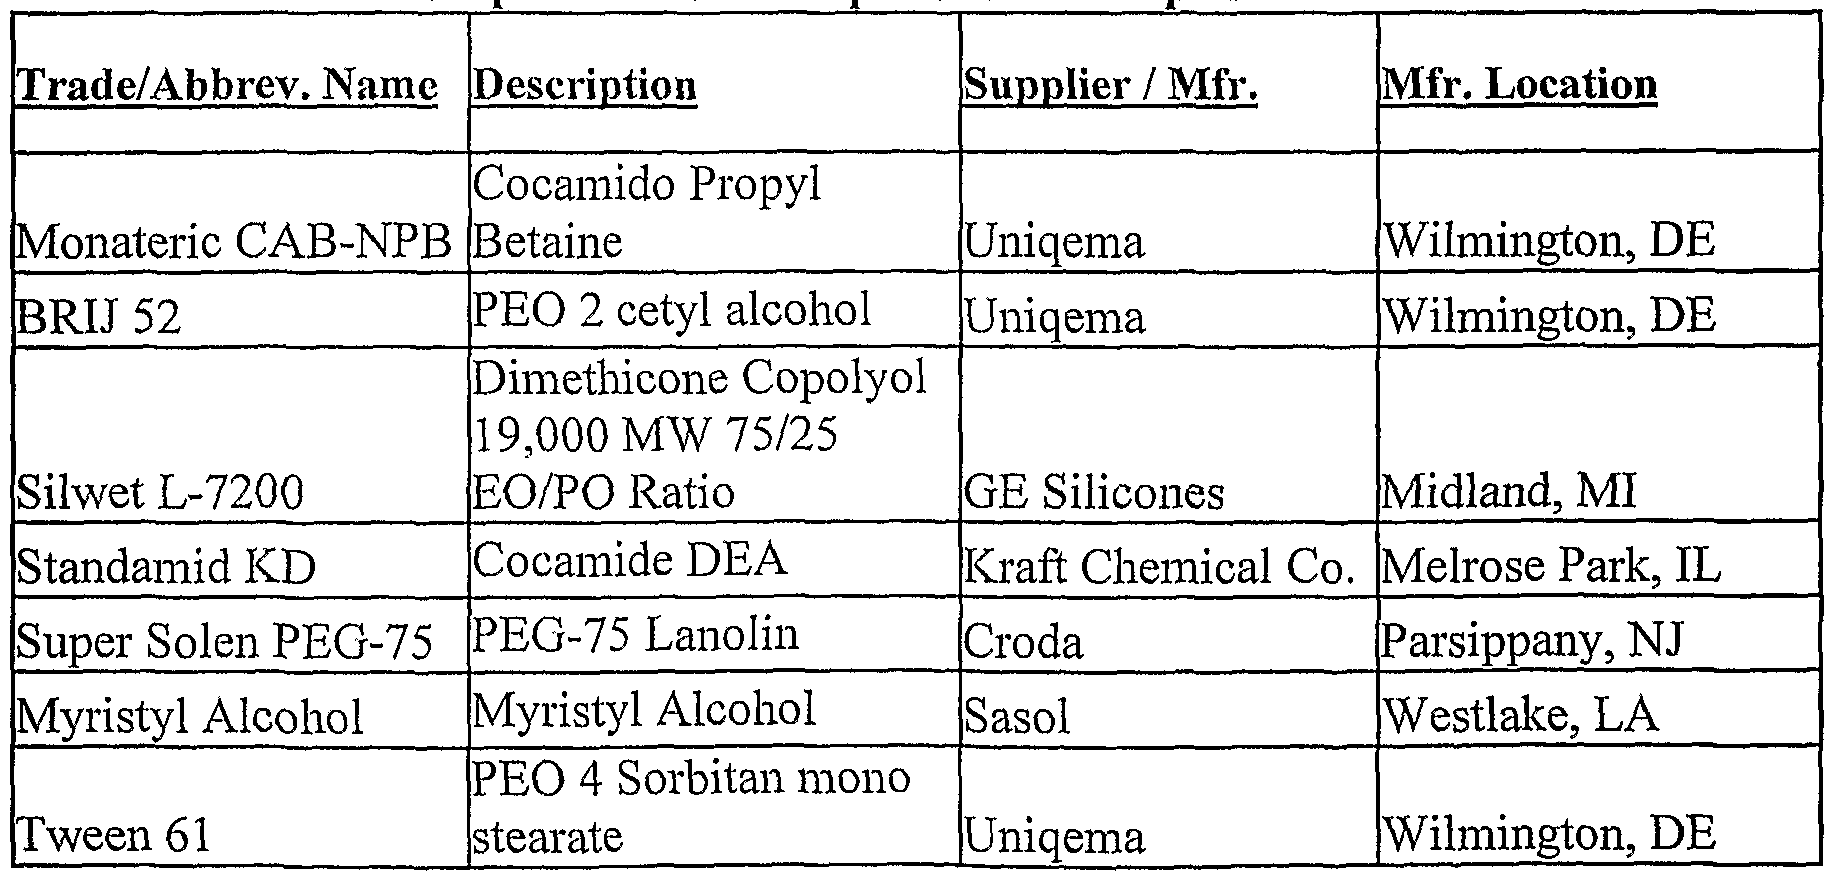 WO2006138111A1 - Foamable alcohol compositions, systems and